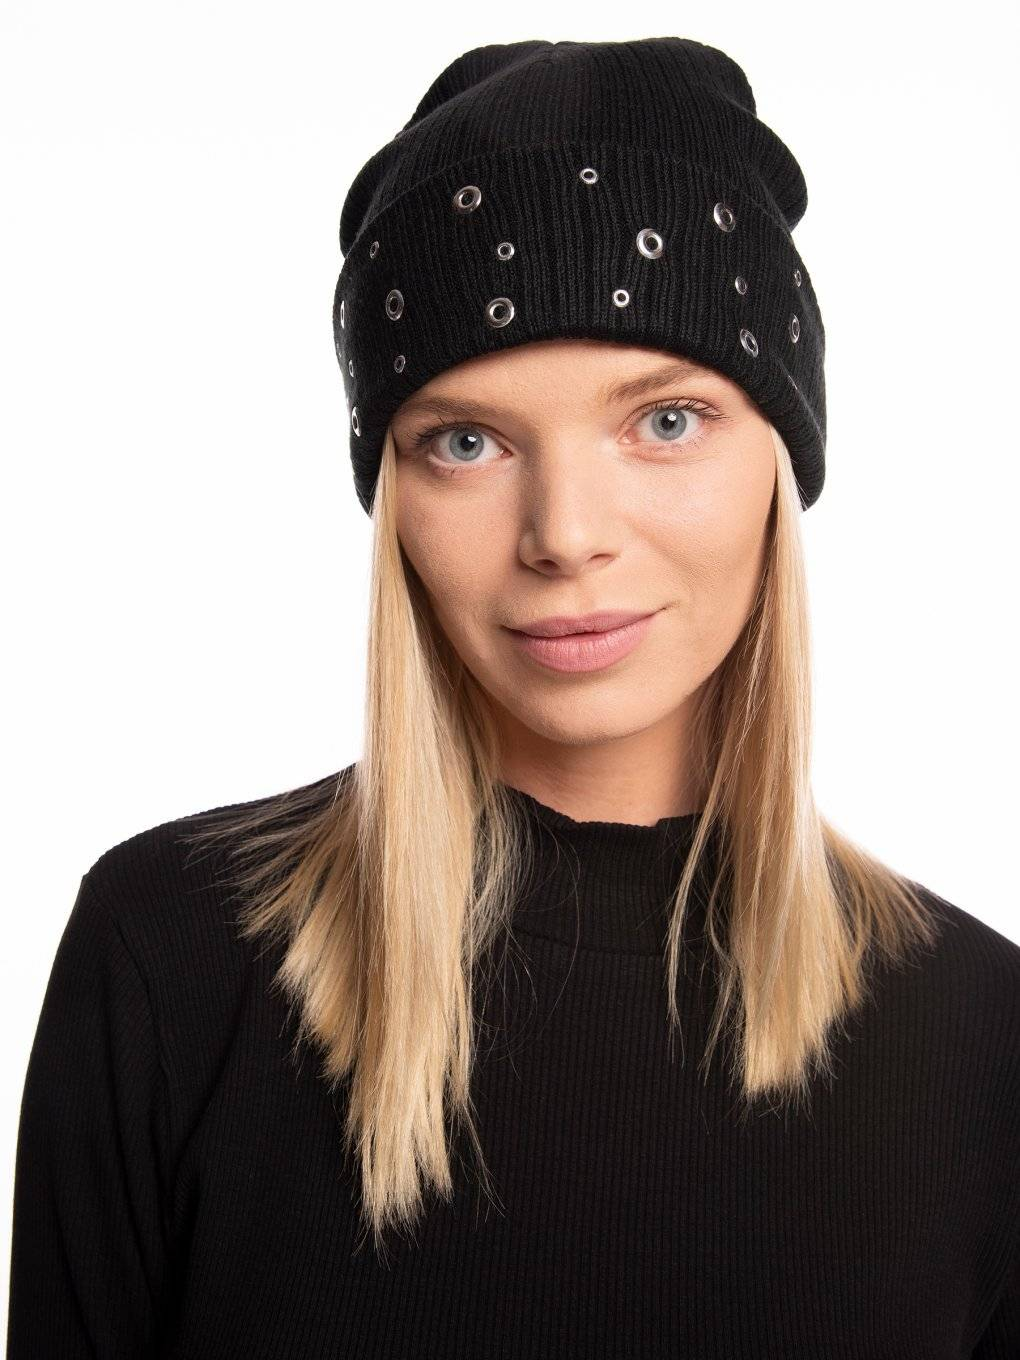 Ribbed beanie with metal eyelets